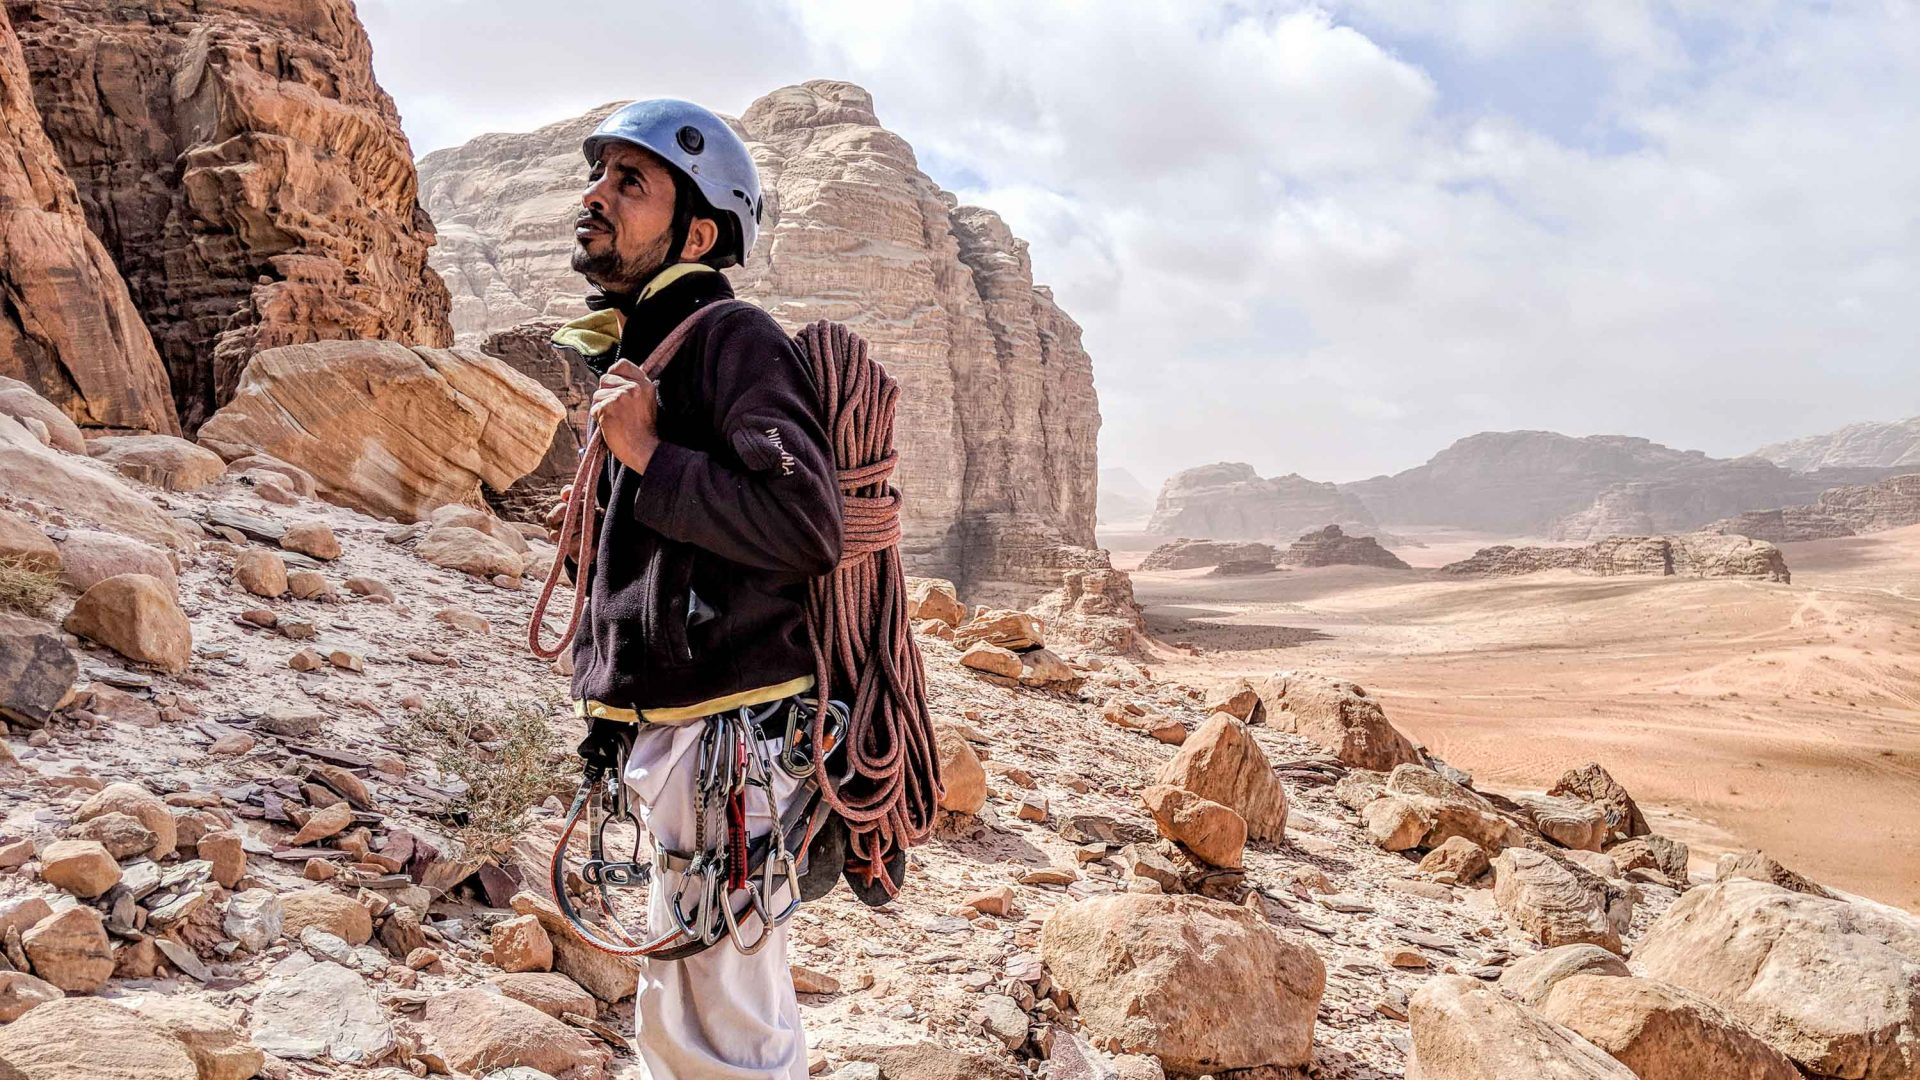 Hardly anyone goes rock climbing in Wadi Rum, which is why you should